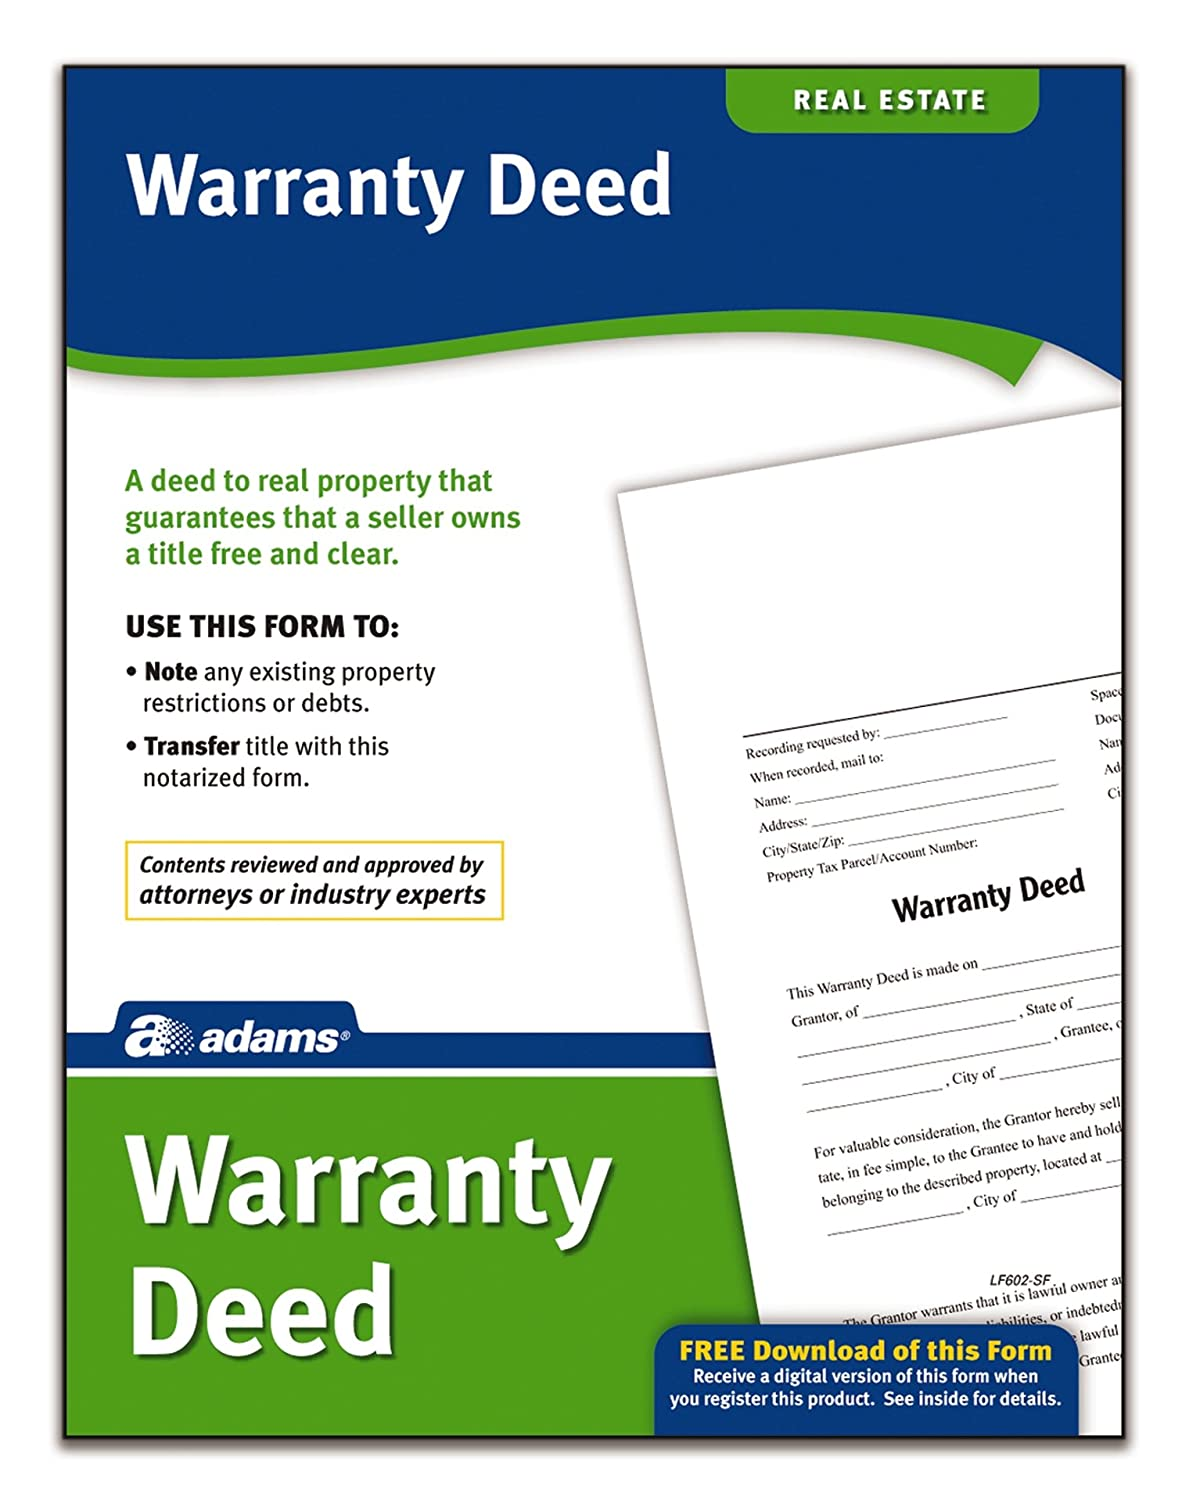 Amazon.com : Adams Warranty Deed, Forms And Instructions (LF602) : Legal  Forms : Office Products